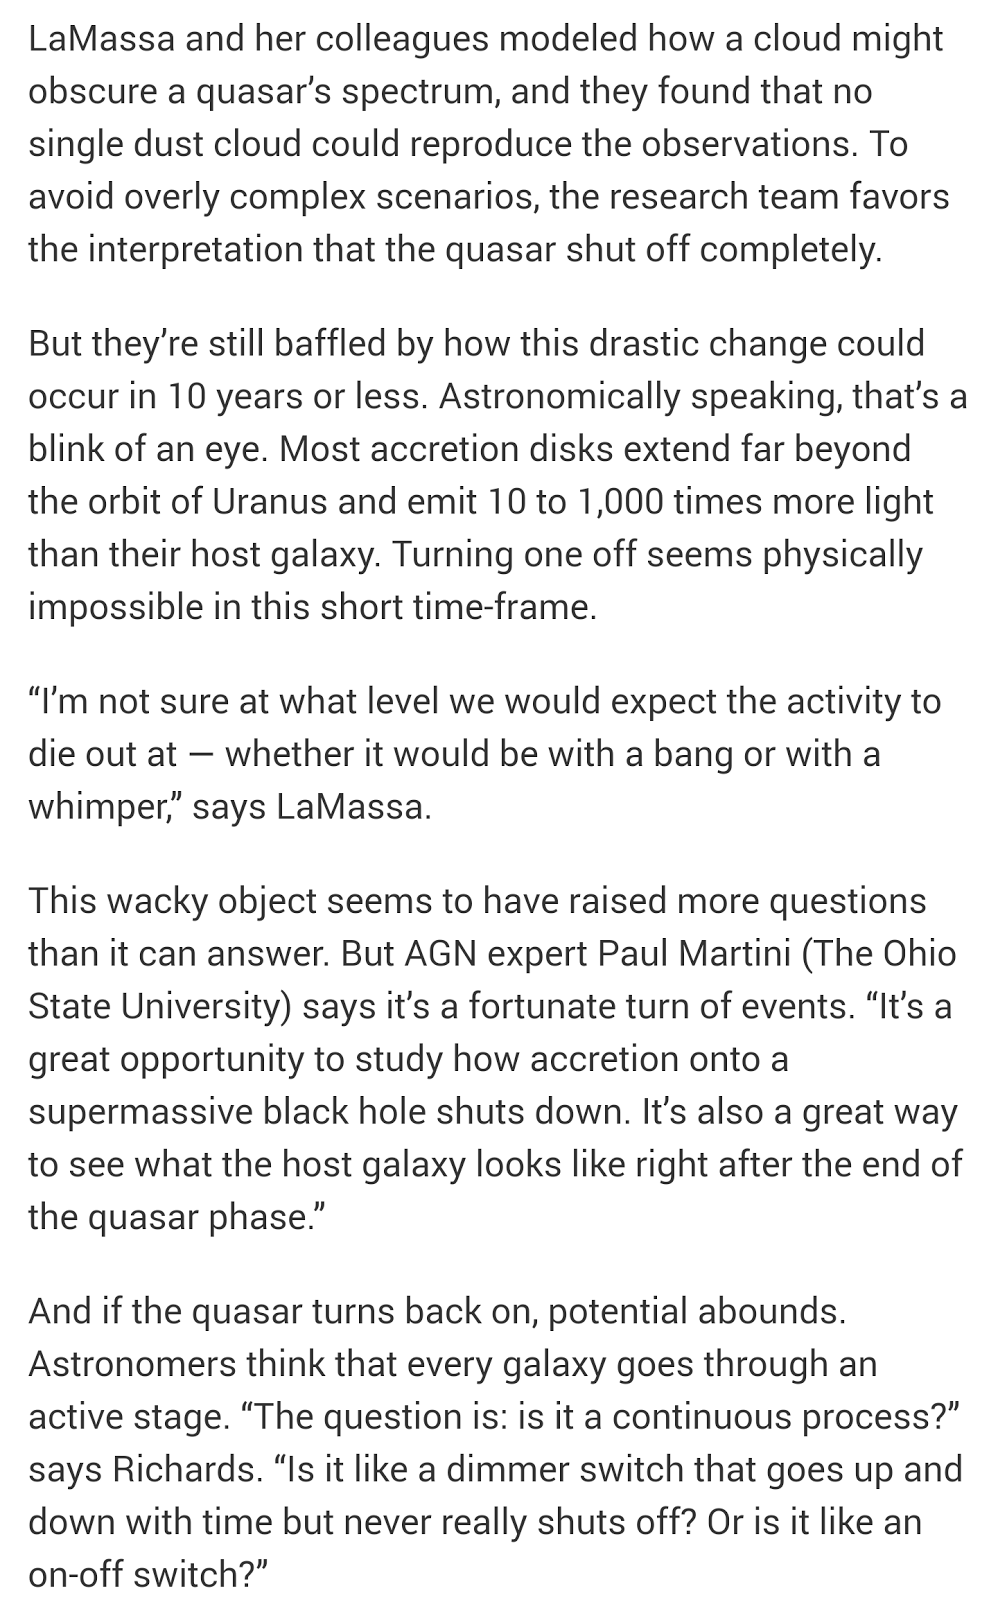 Electrical Charged Superfluid Plasma Cosmology Changing Look - 22 pictures that are beyond impossible to explain